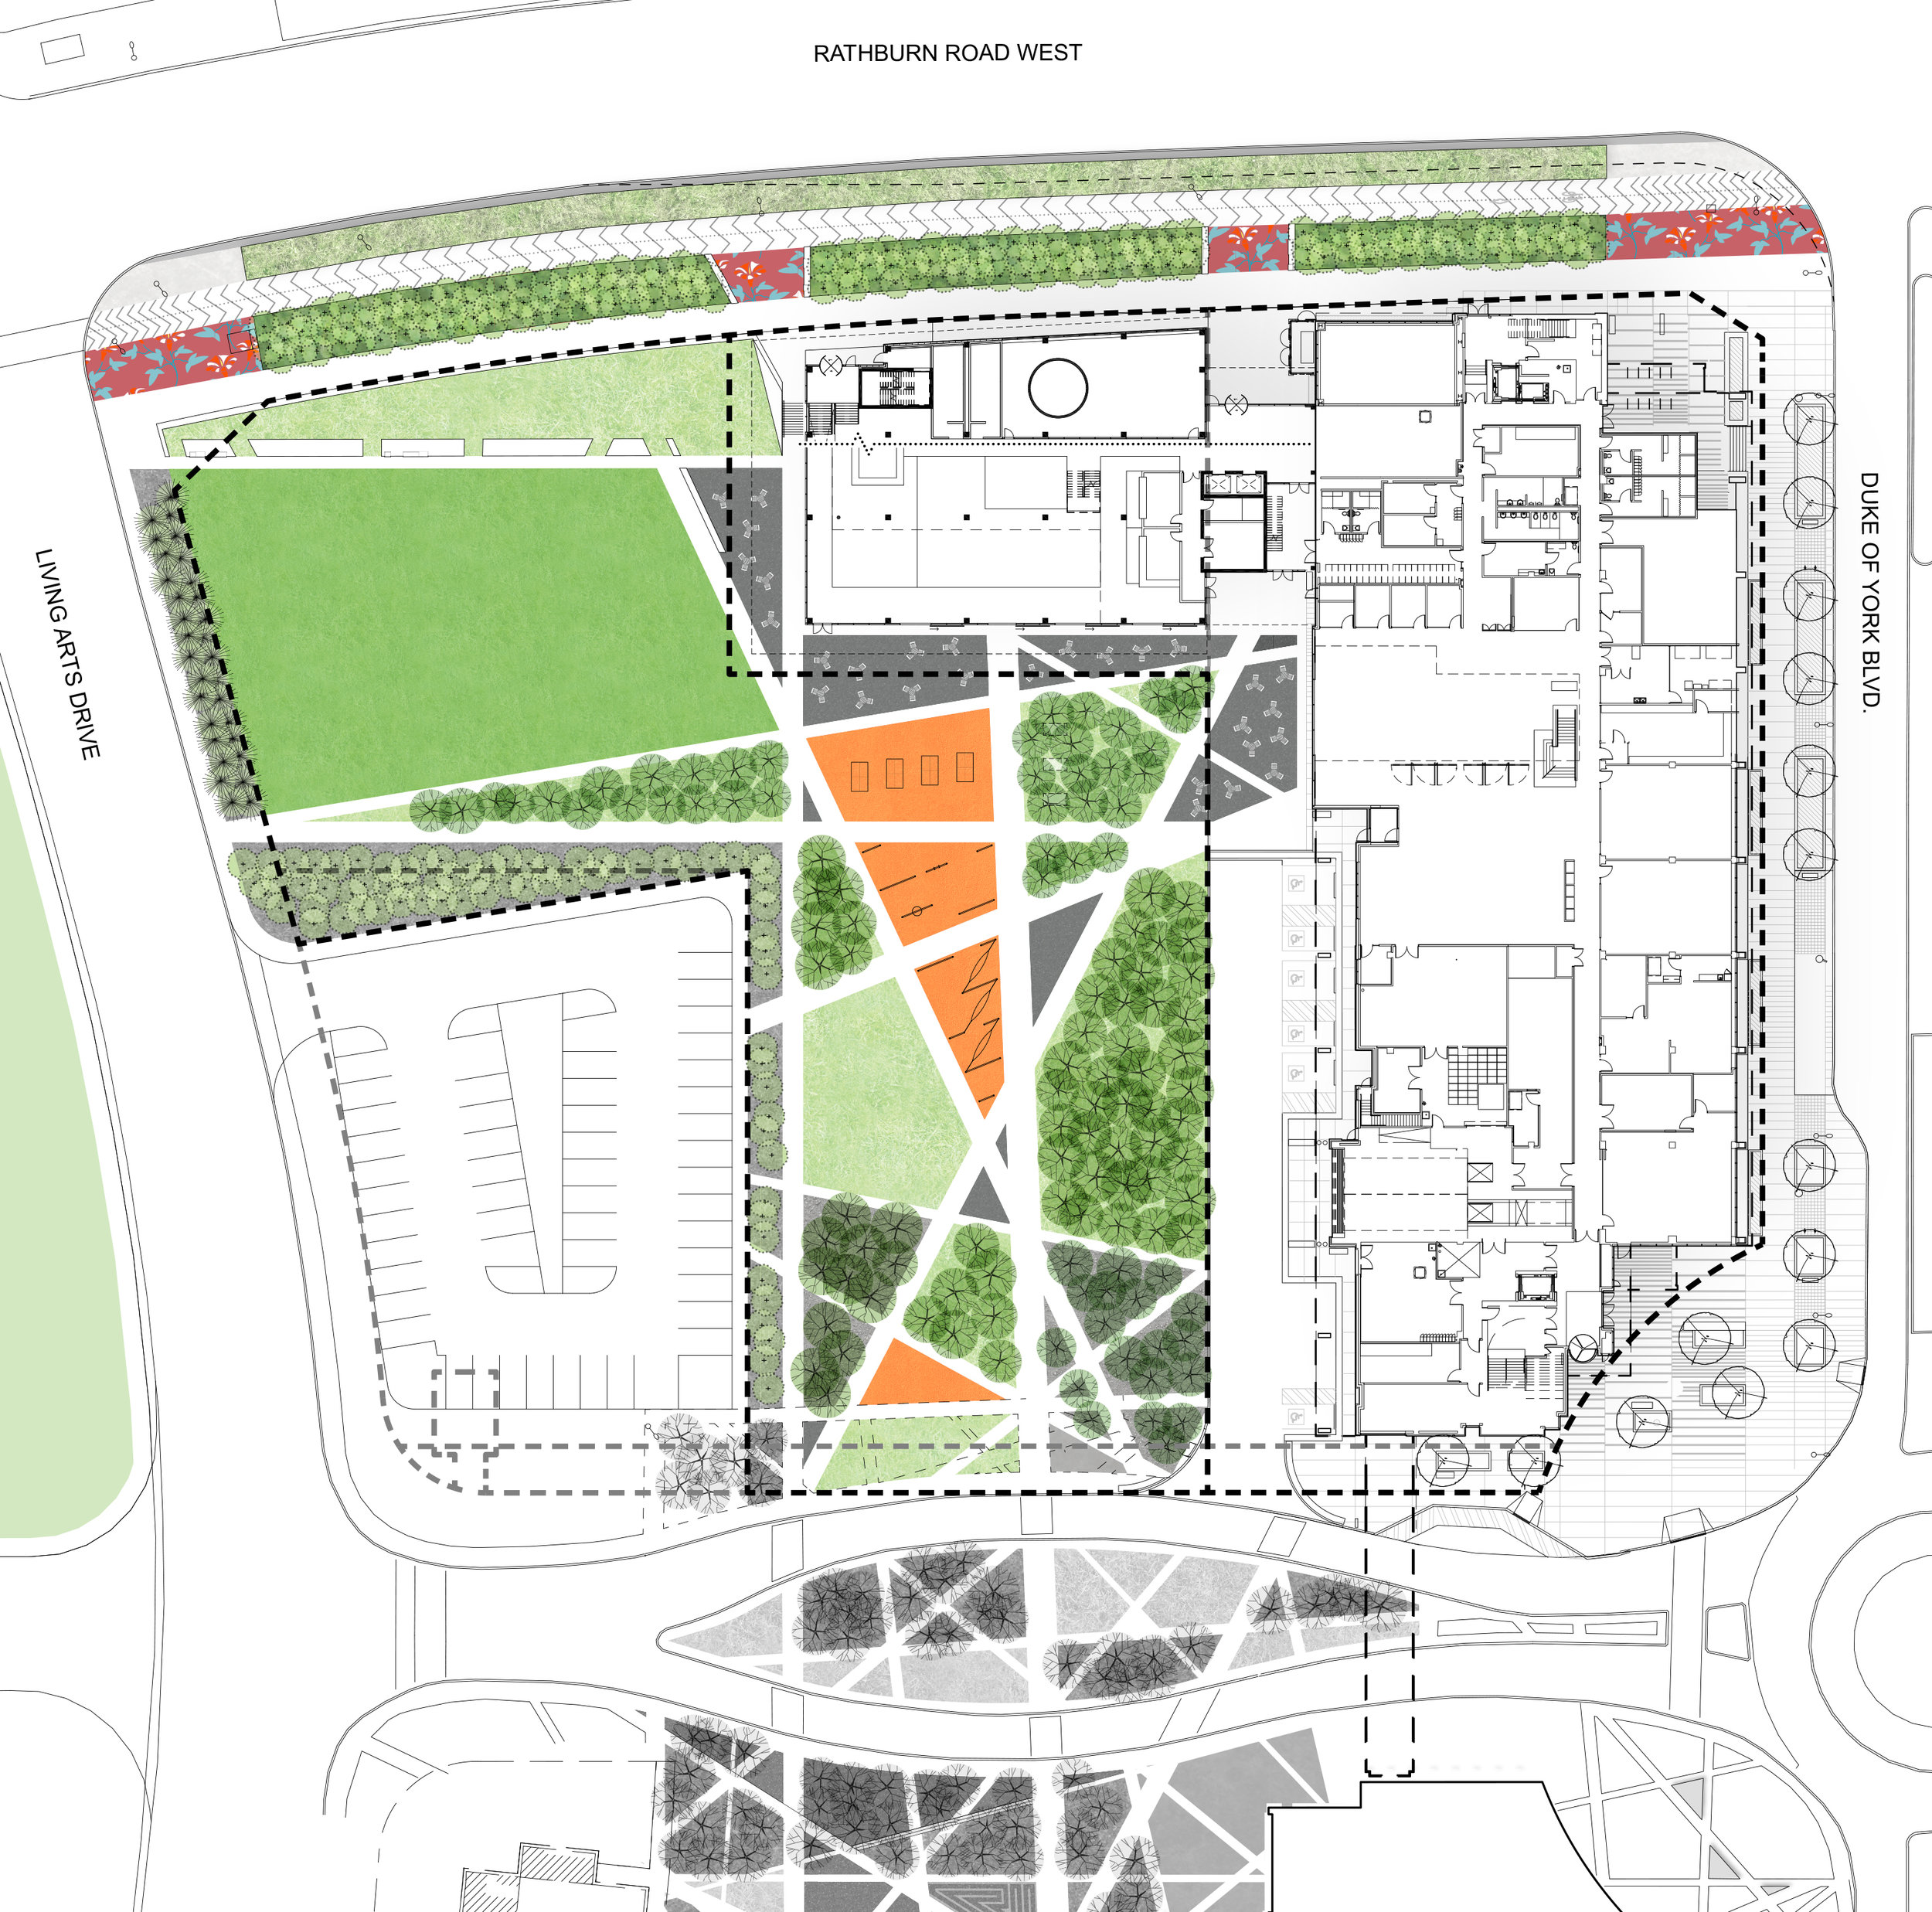 gh3 - Scholars' Green 2 - Site Plan